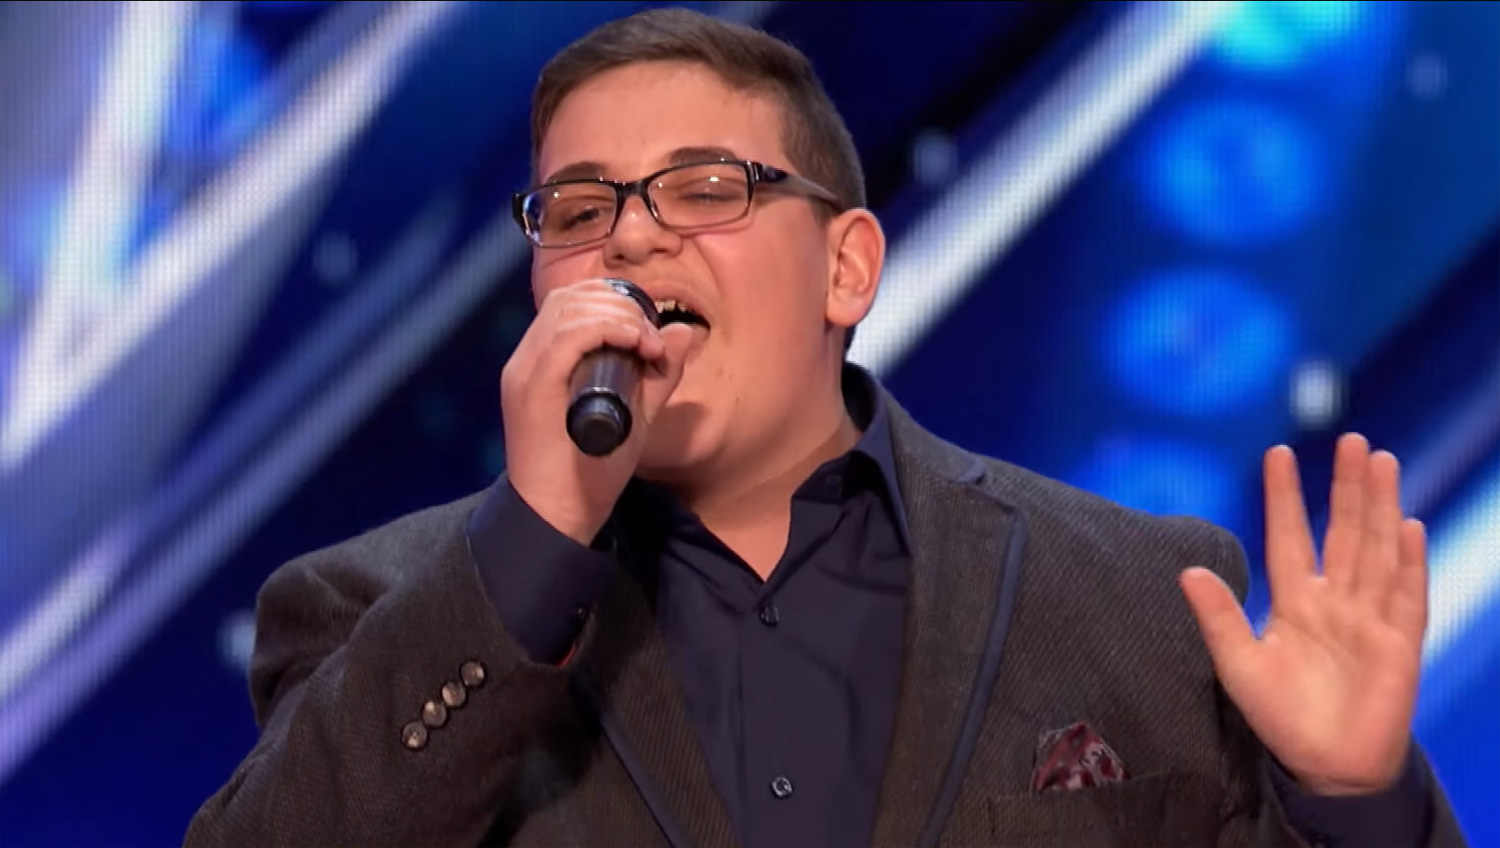 Americas got talent 2017 impersonations - 16 Year Old Christian Guardino S Amazing Voice Earns America S Got Talent